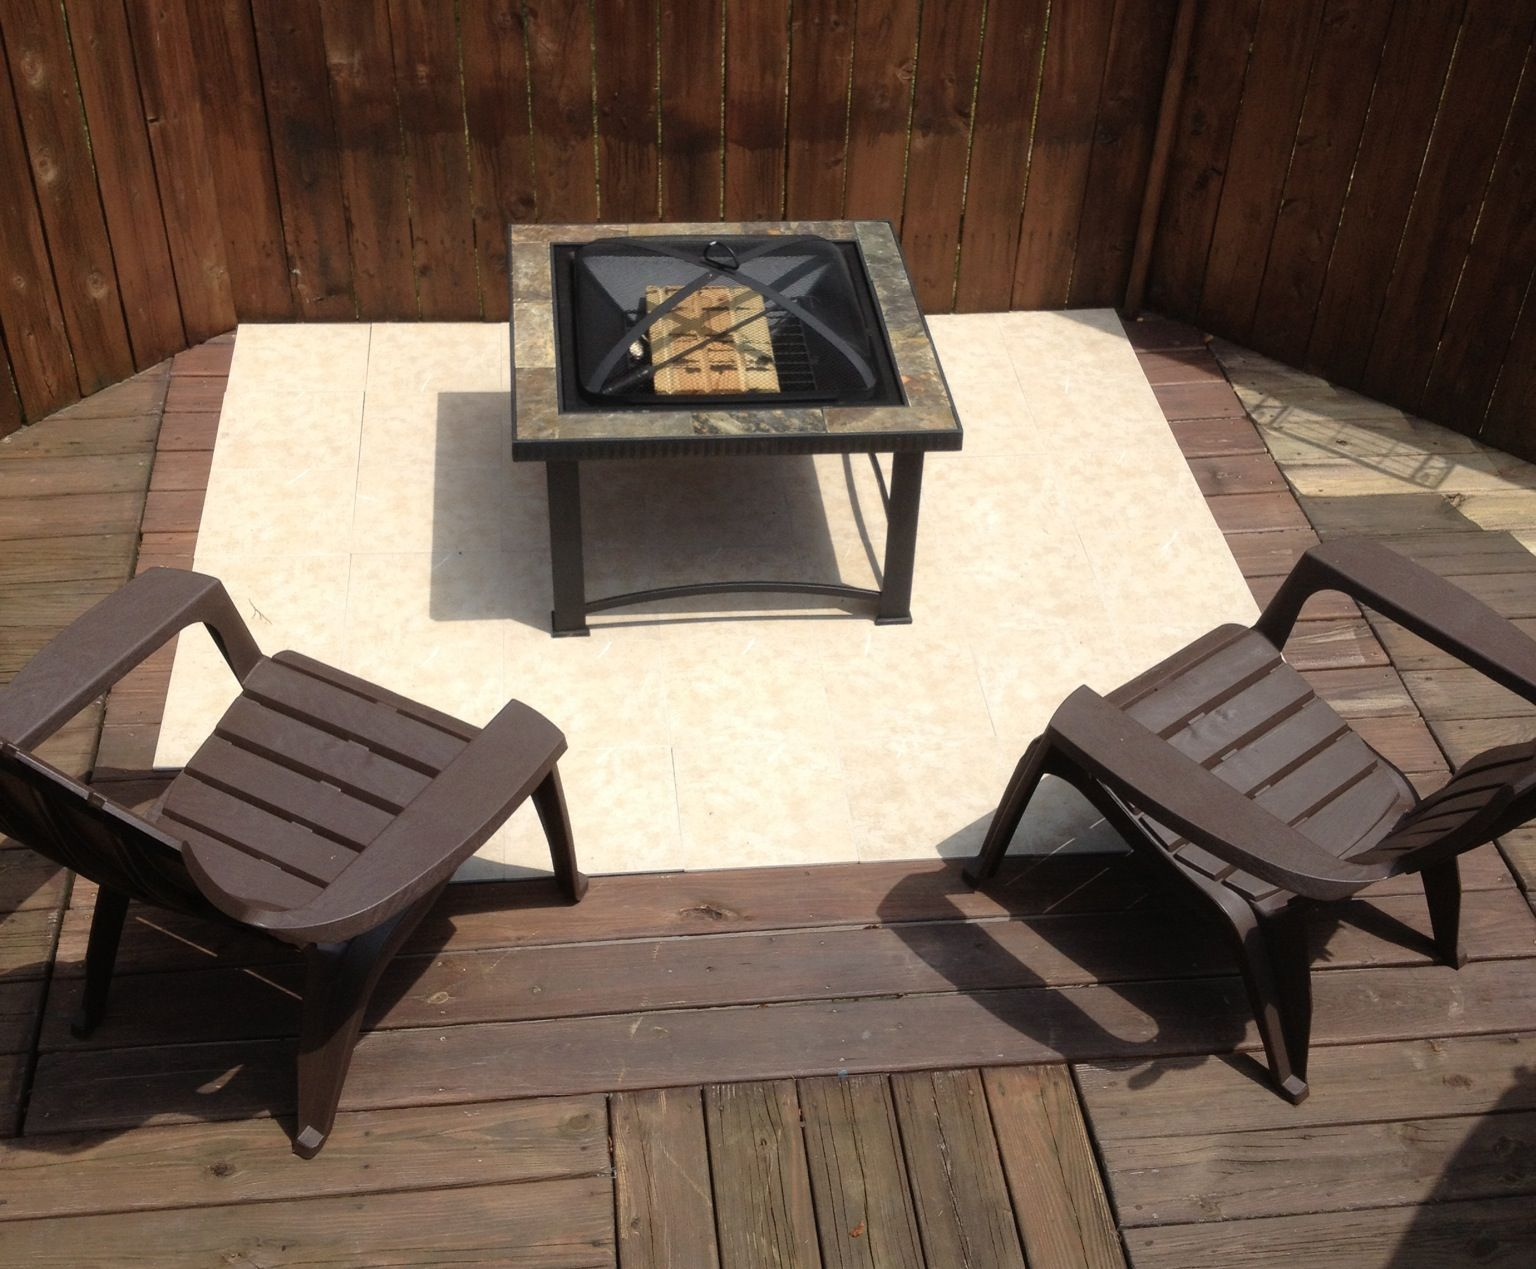 Diy Fire Pit Easy How To Build